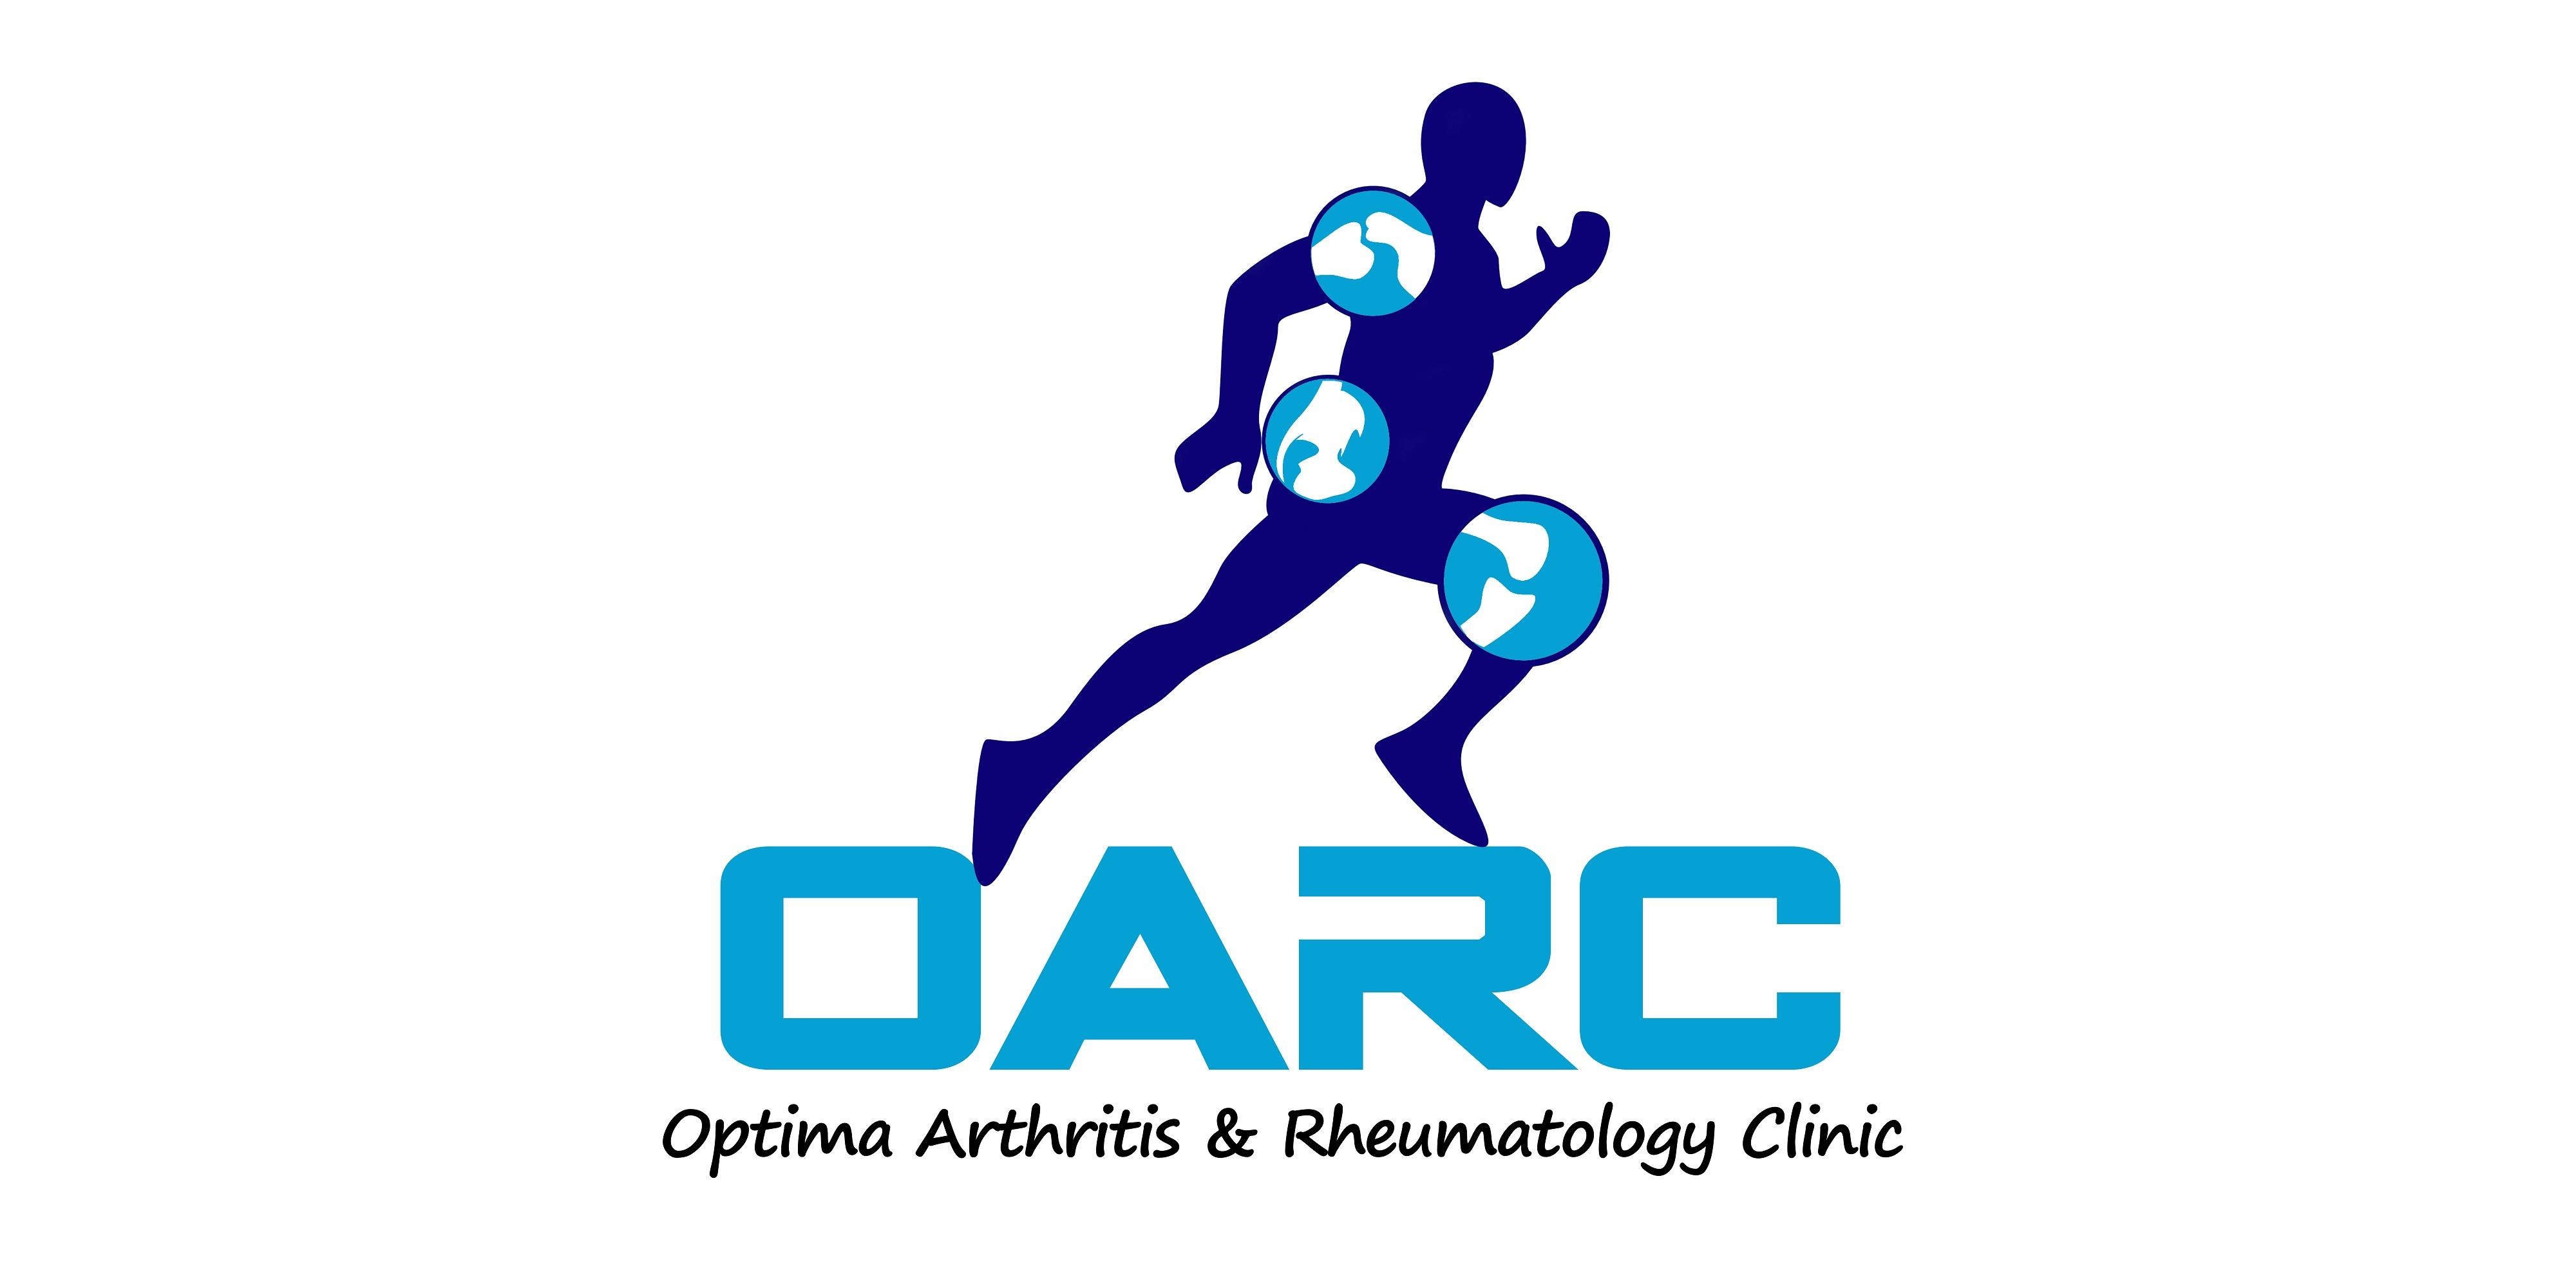 Optima Arthritis & Rheumatology Clinic